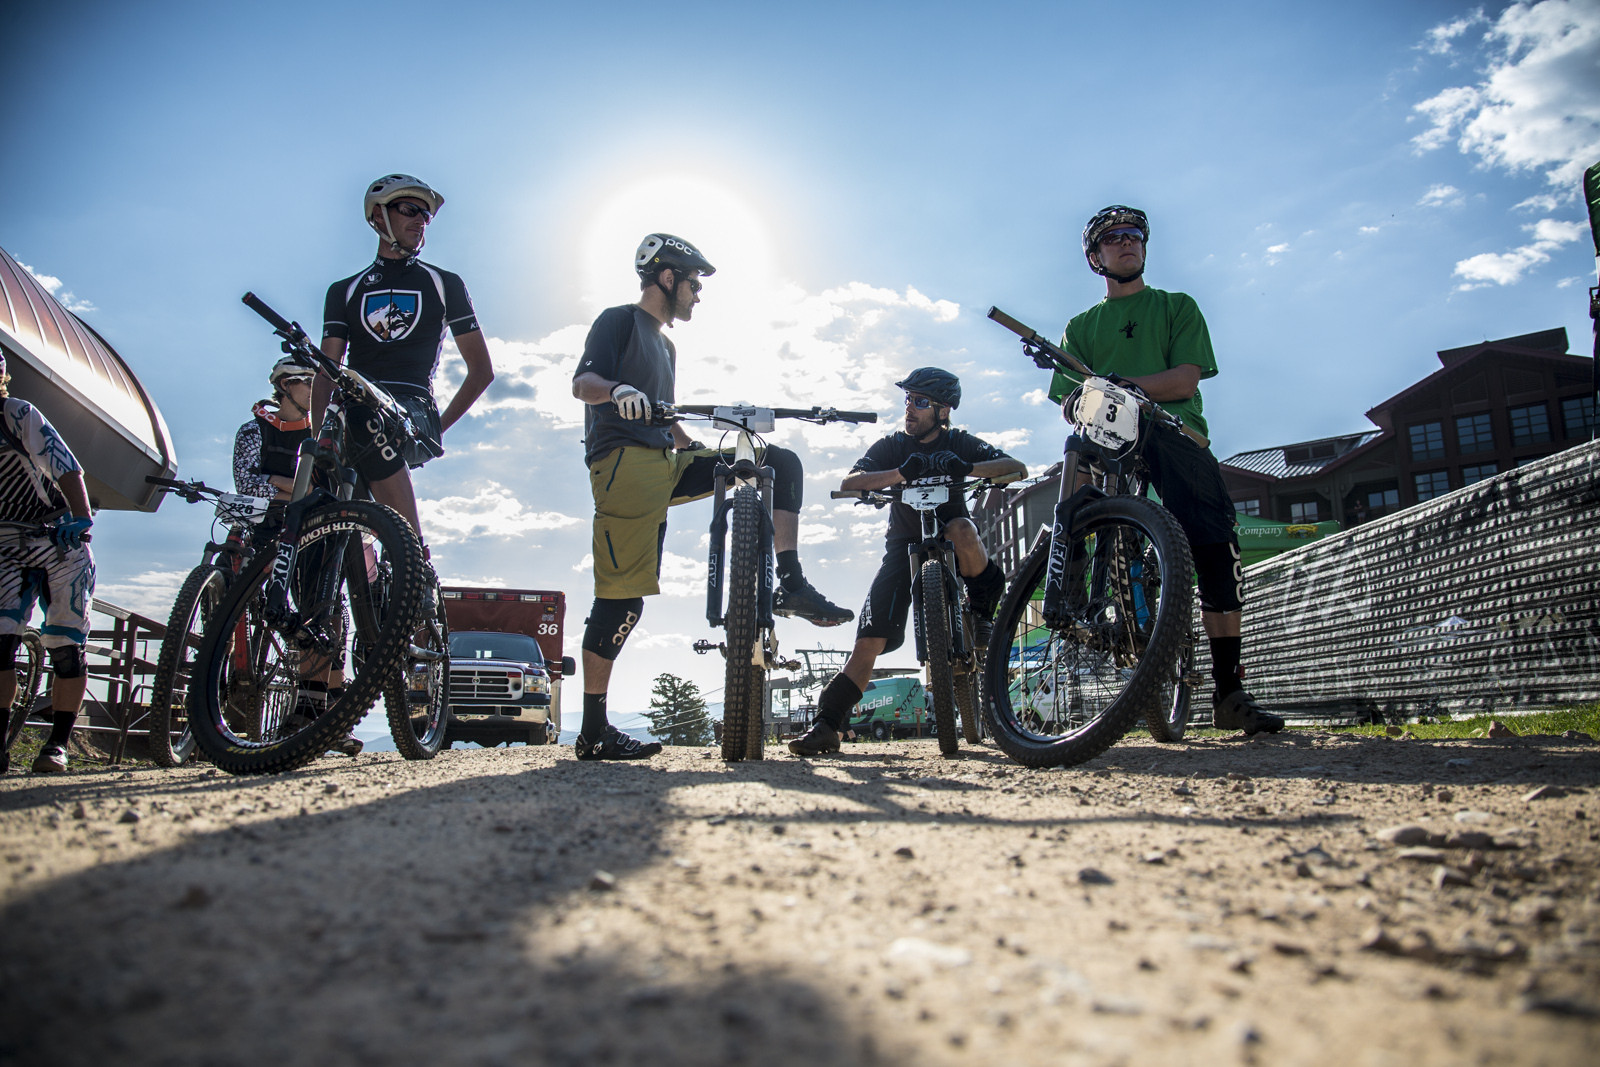 The Bell Enduro Cup at Canyons Resort Kicks off - Race Report, Photos and Video: Bell Enduro Cup at Canyons Resort - Mountain Biking Pictures - Vital MTB